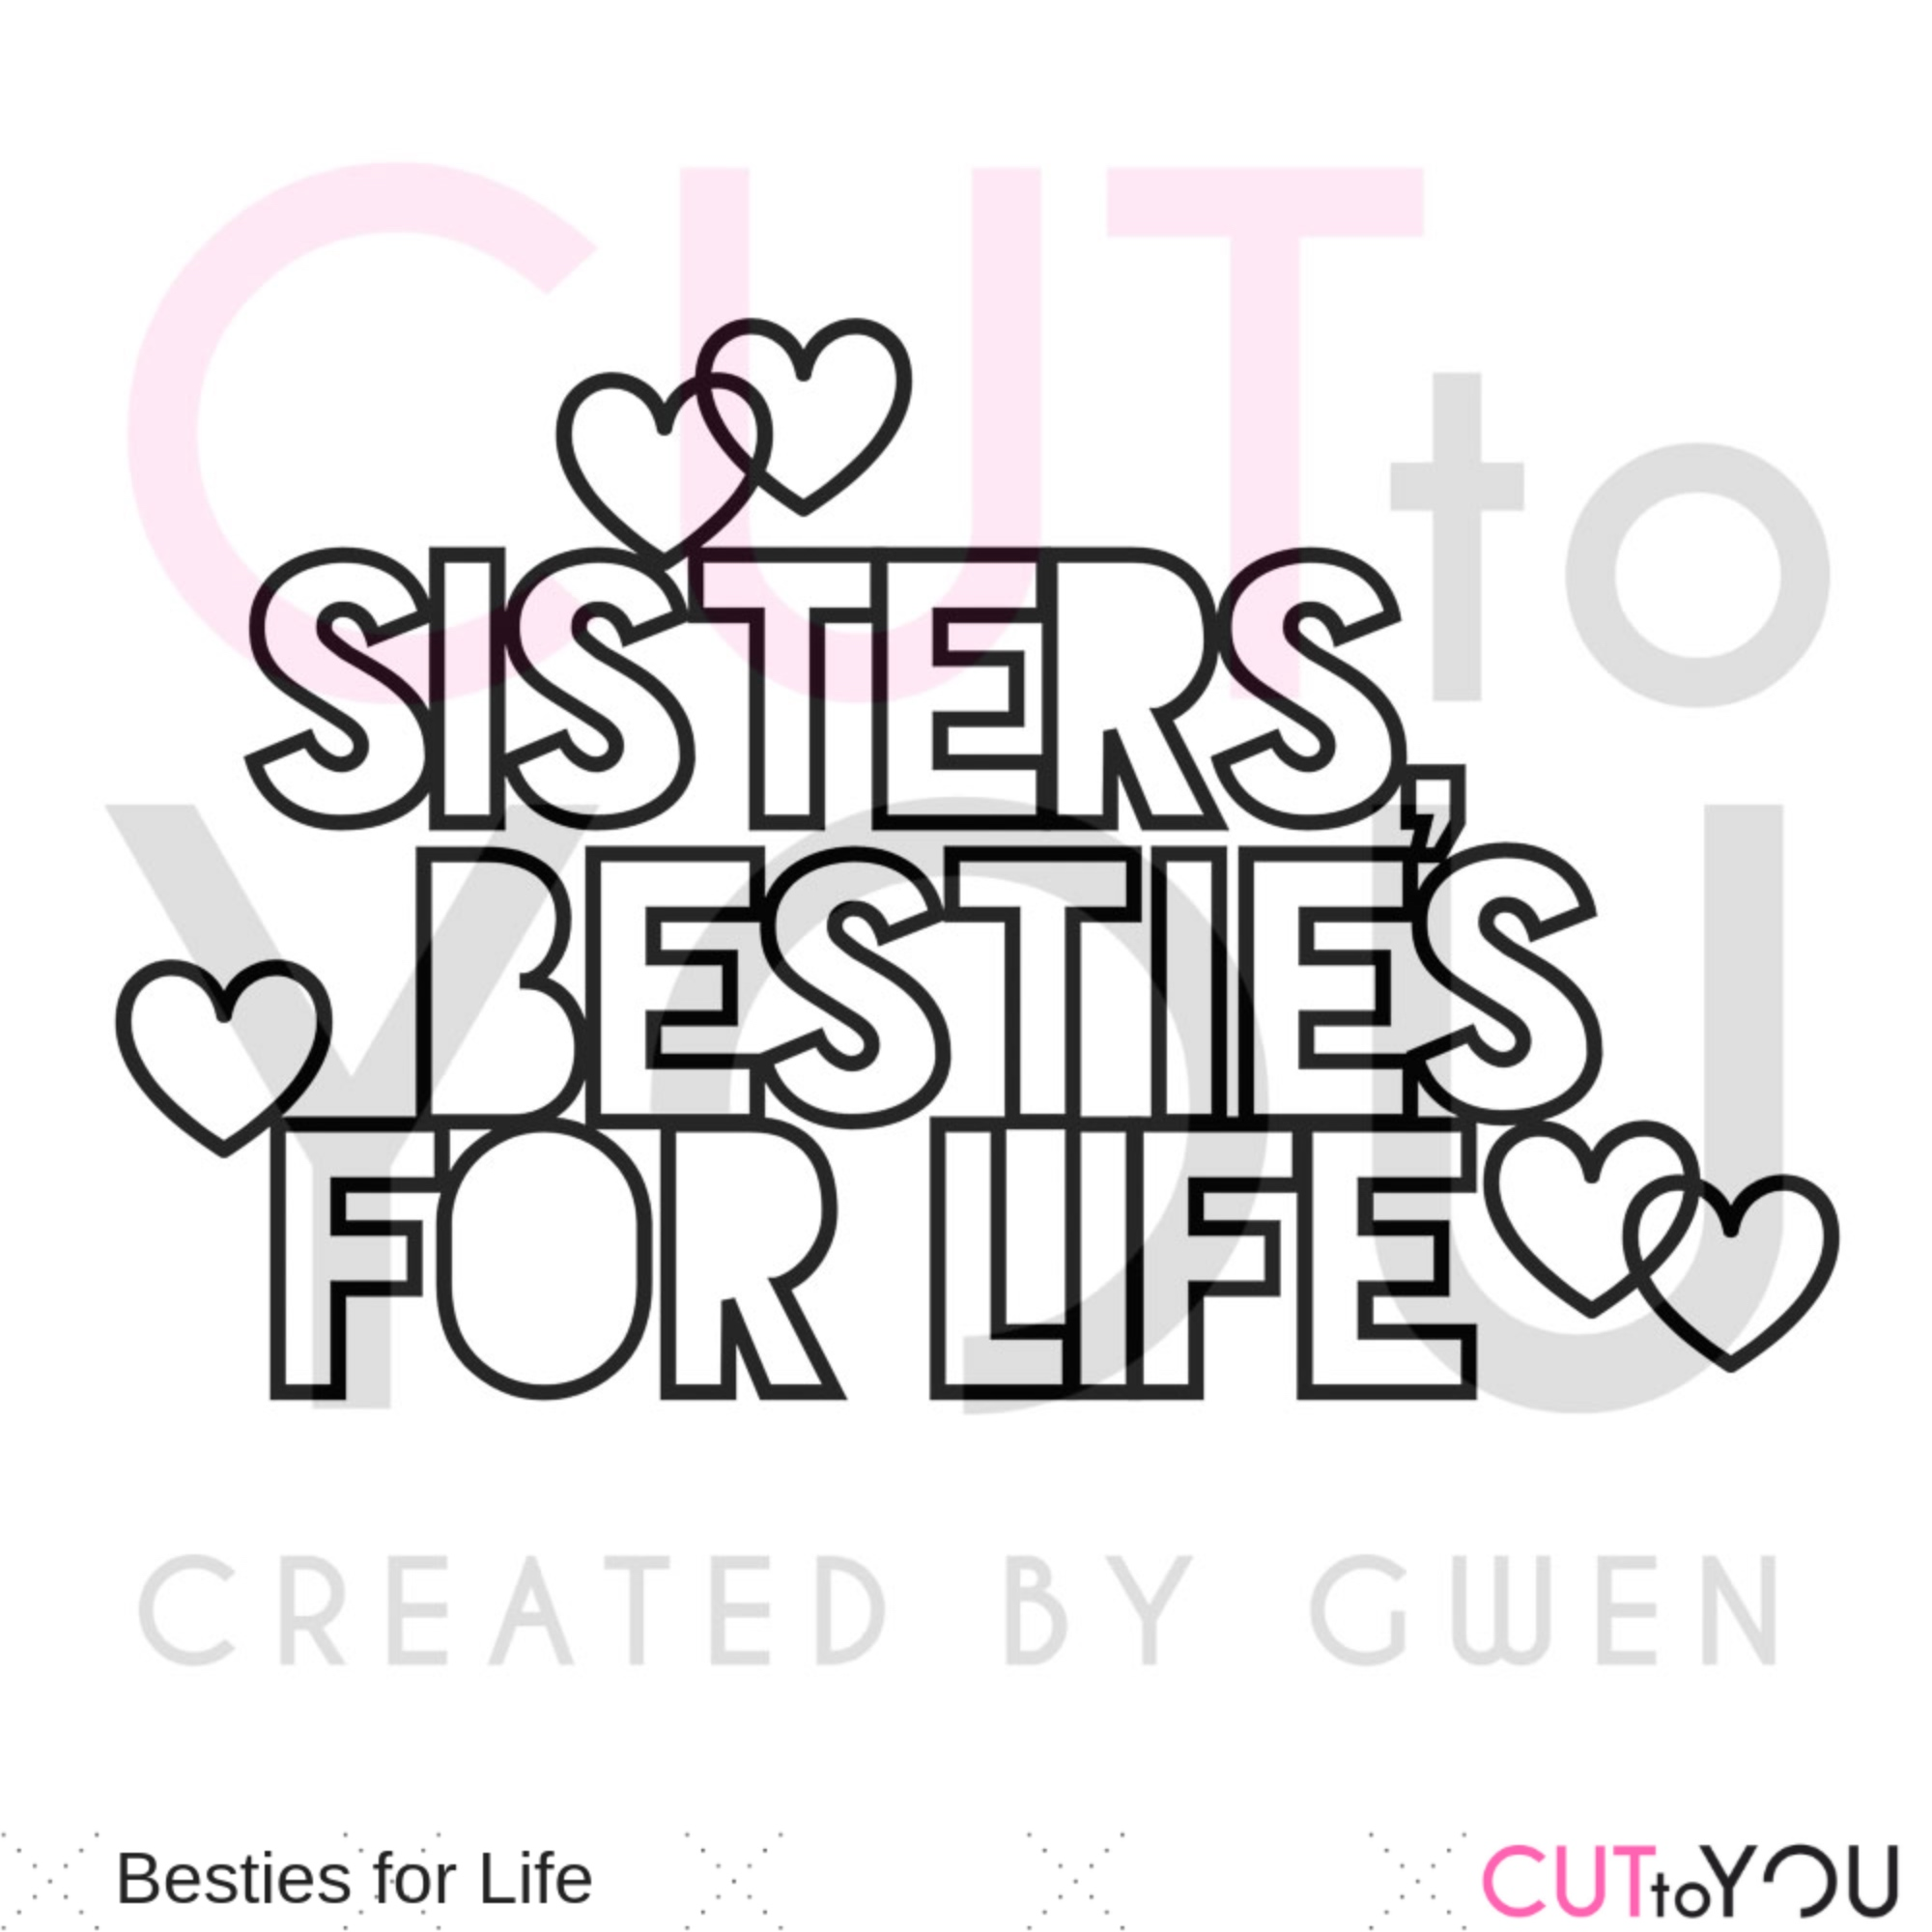 Besties For Life Title Cut File Created By Gwen